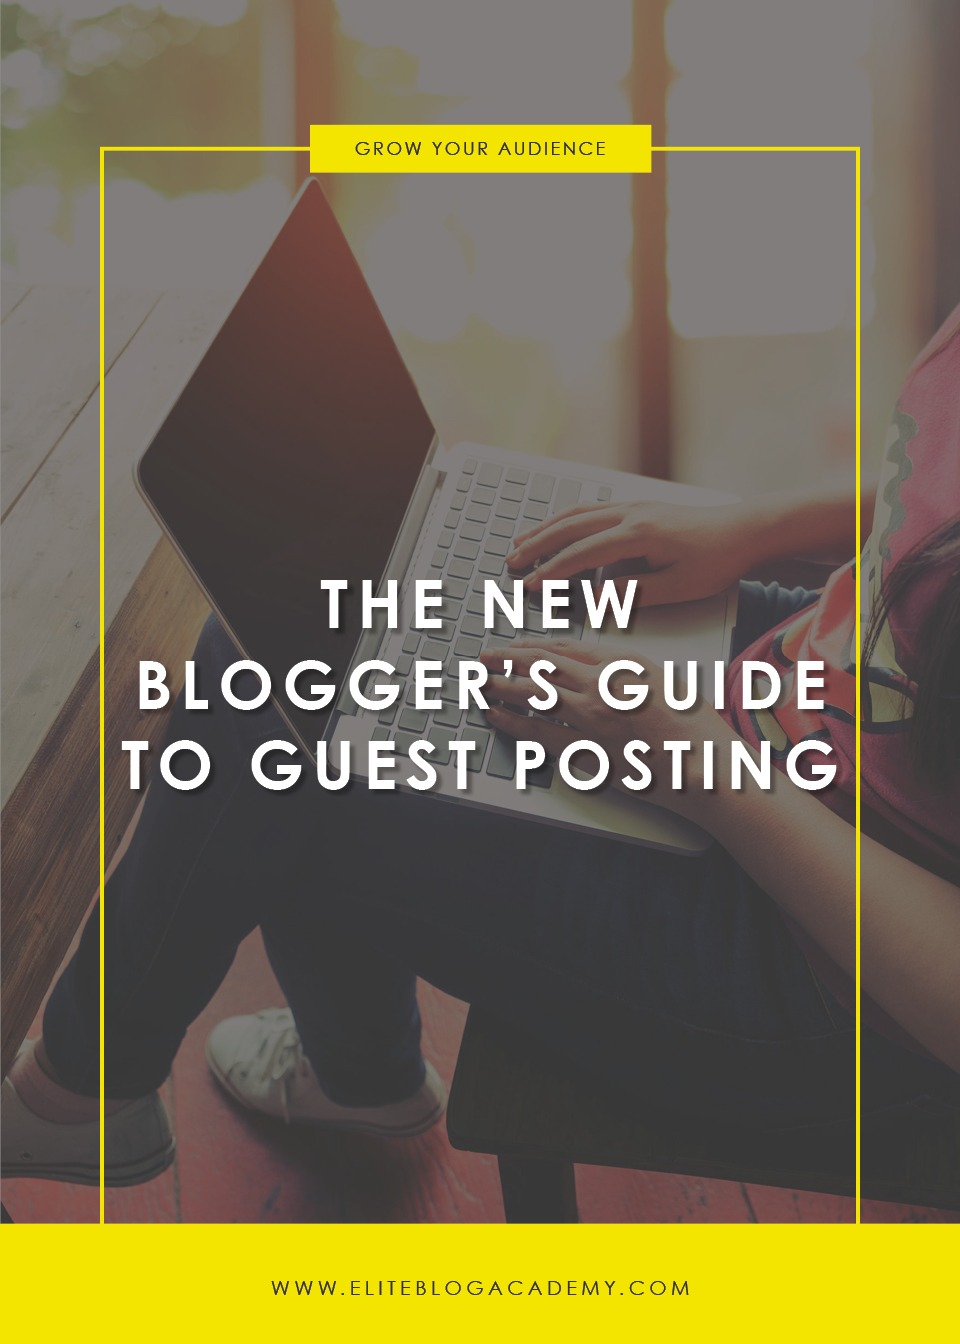 The New Blogger's Guide to Guest Posting | Elite Blog Academy | How to Blog | Blogging 101 | How to Grow Your Traffic | Networking 101 | Blogging for Beginner's